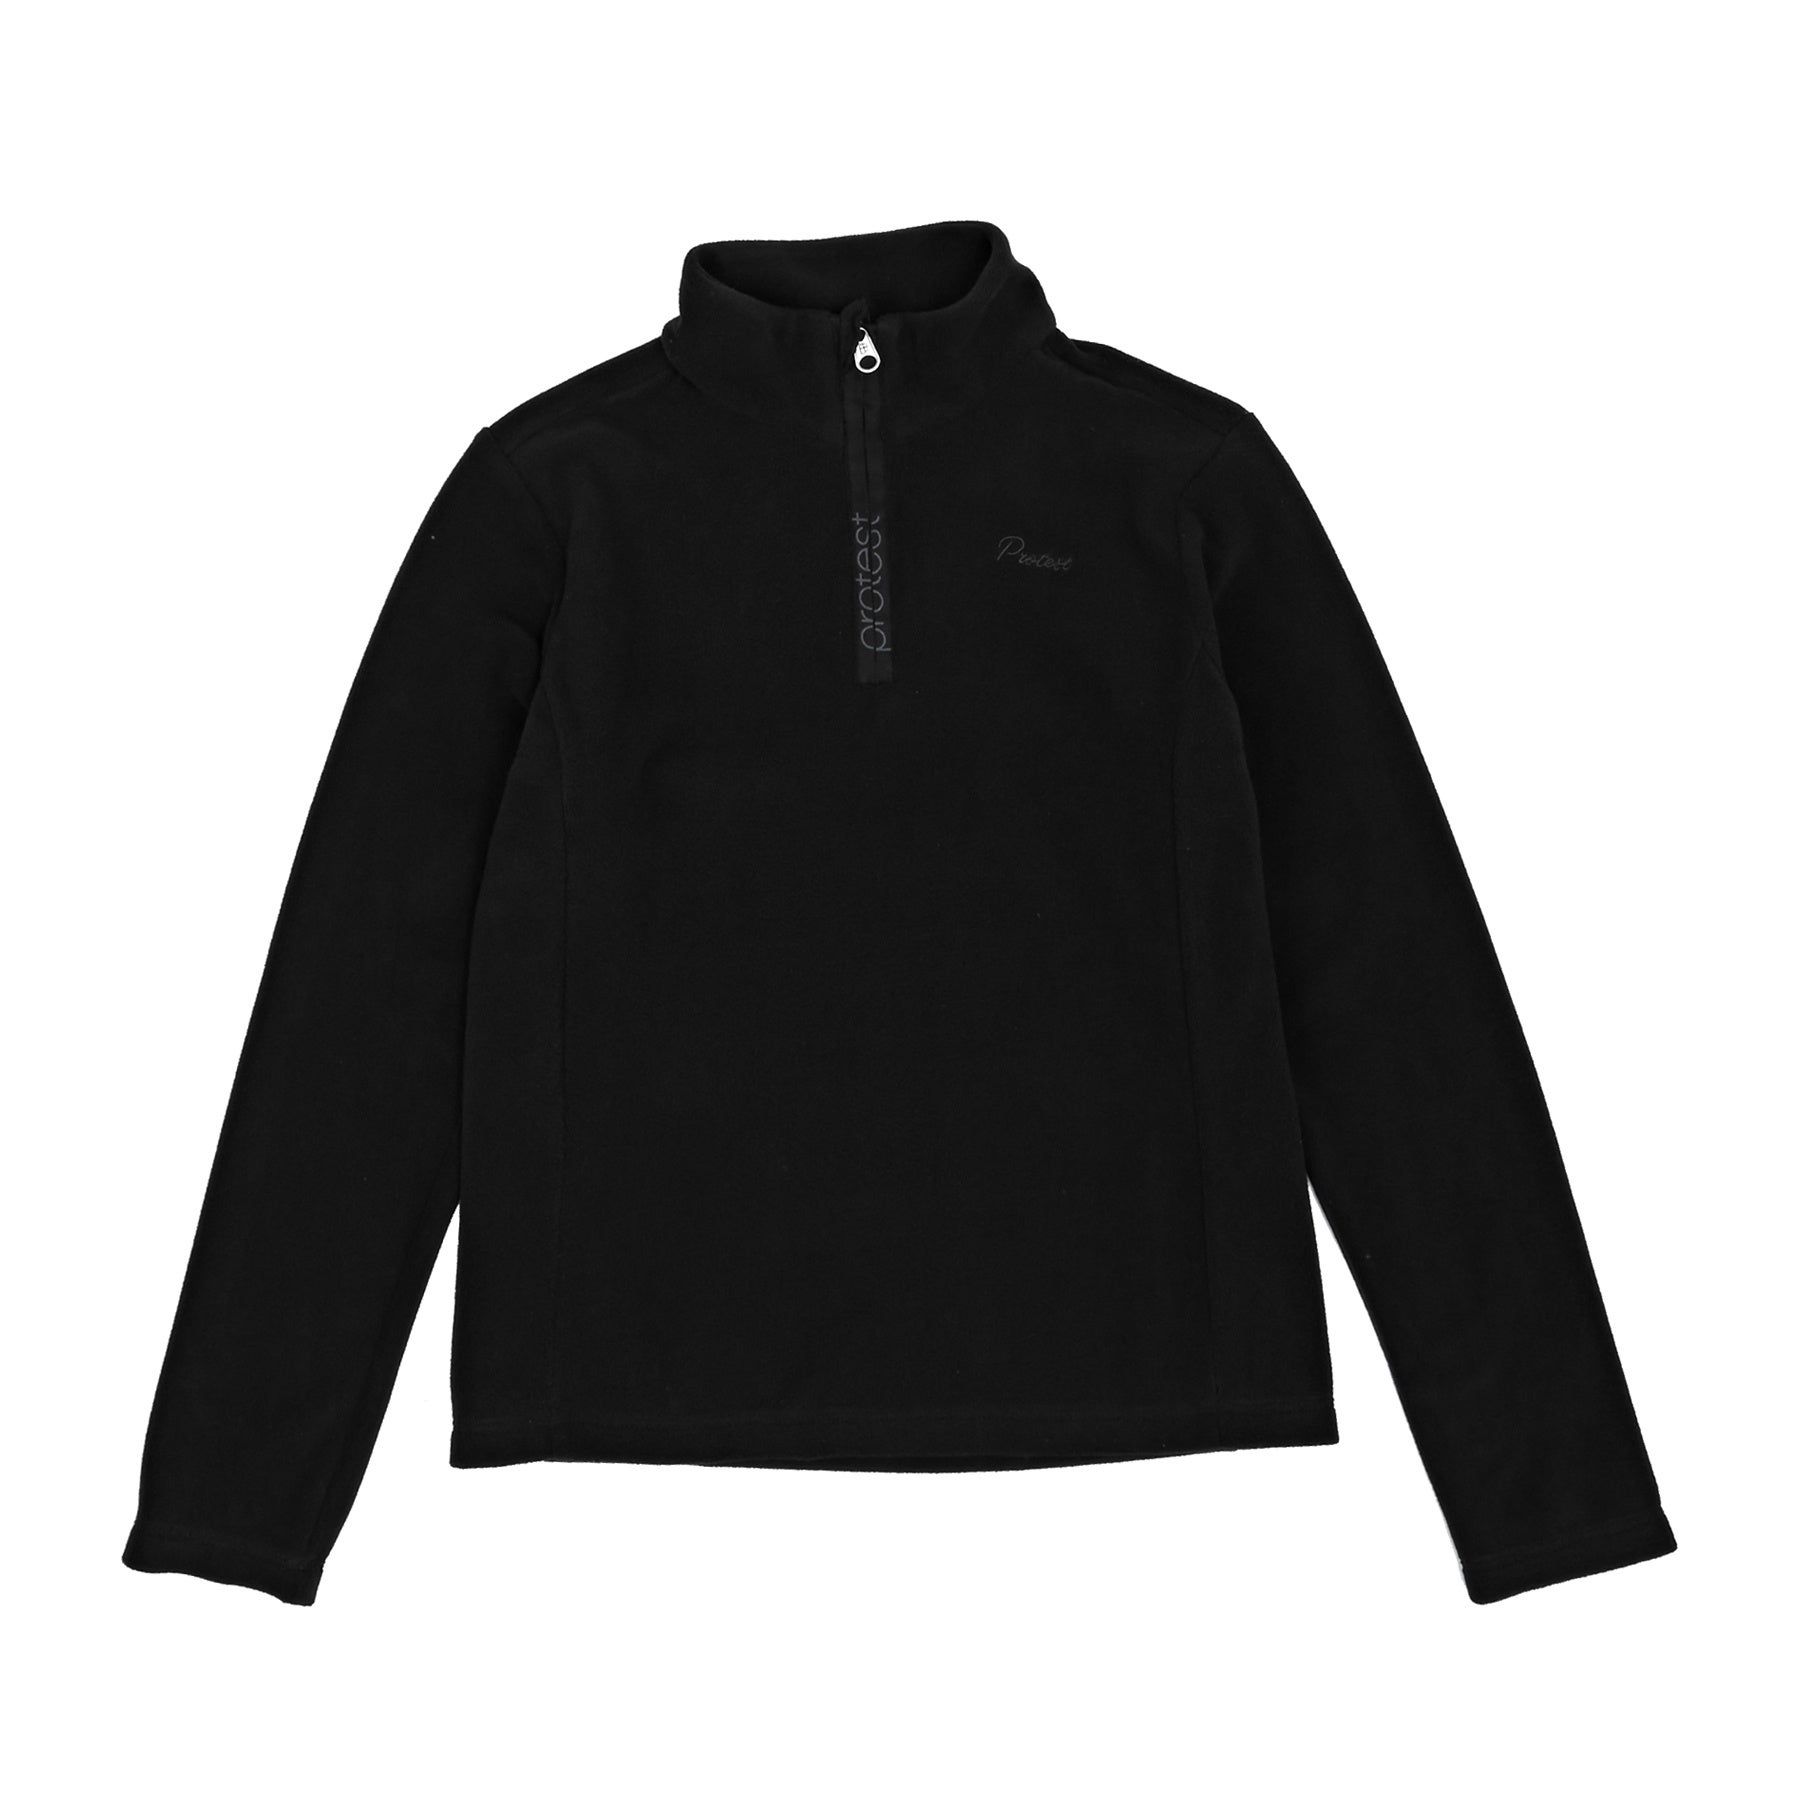 Protest Mutey Jr Quarter Zip Girls Fleece - Black